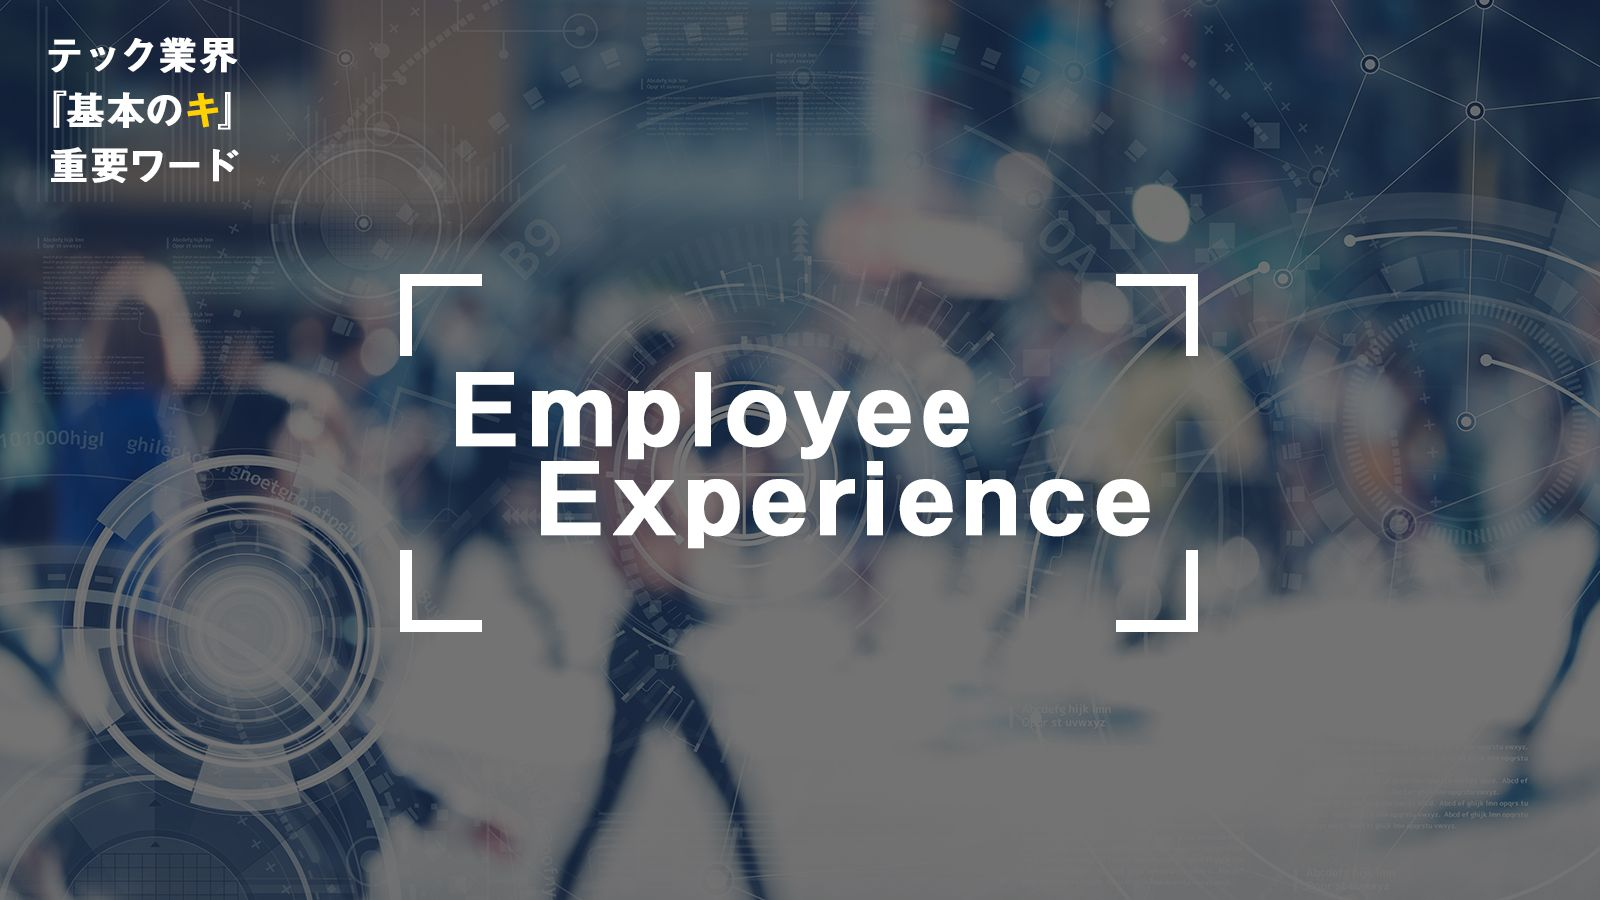 Employee Experience(EX)とは何か?基本知識・EXを高める方法について解説